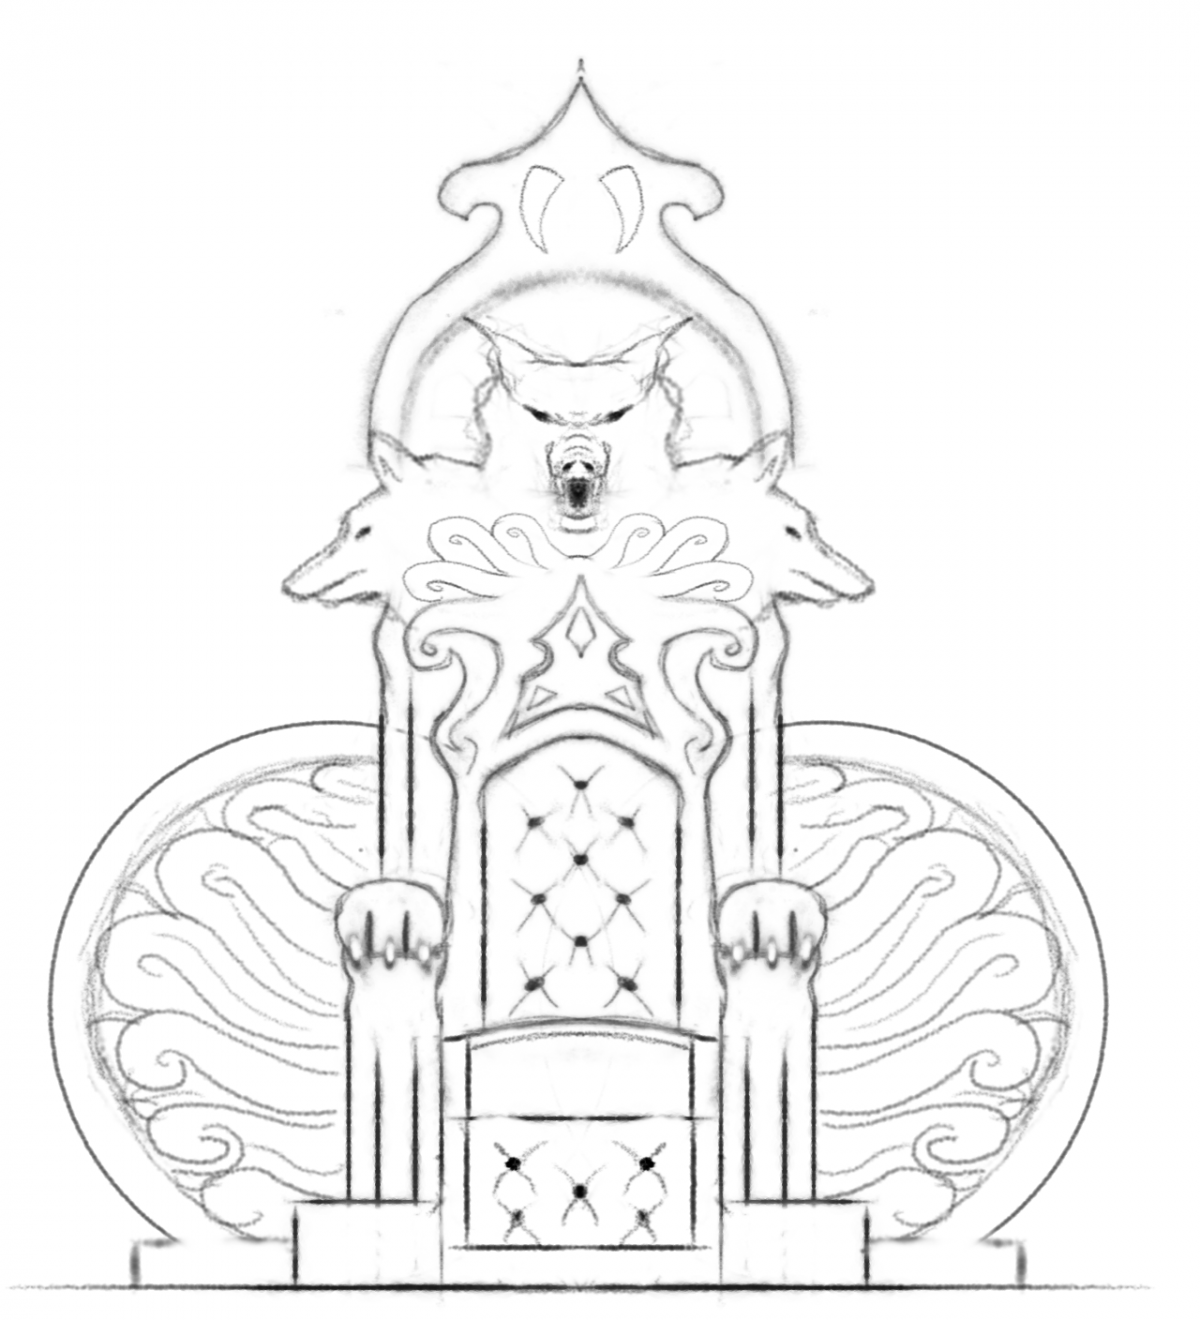 Throne Drawing